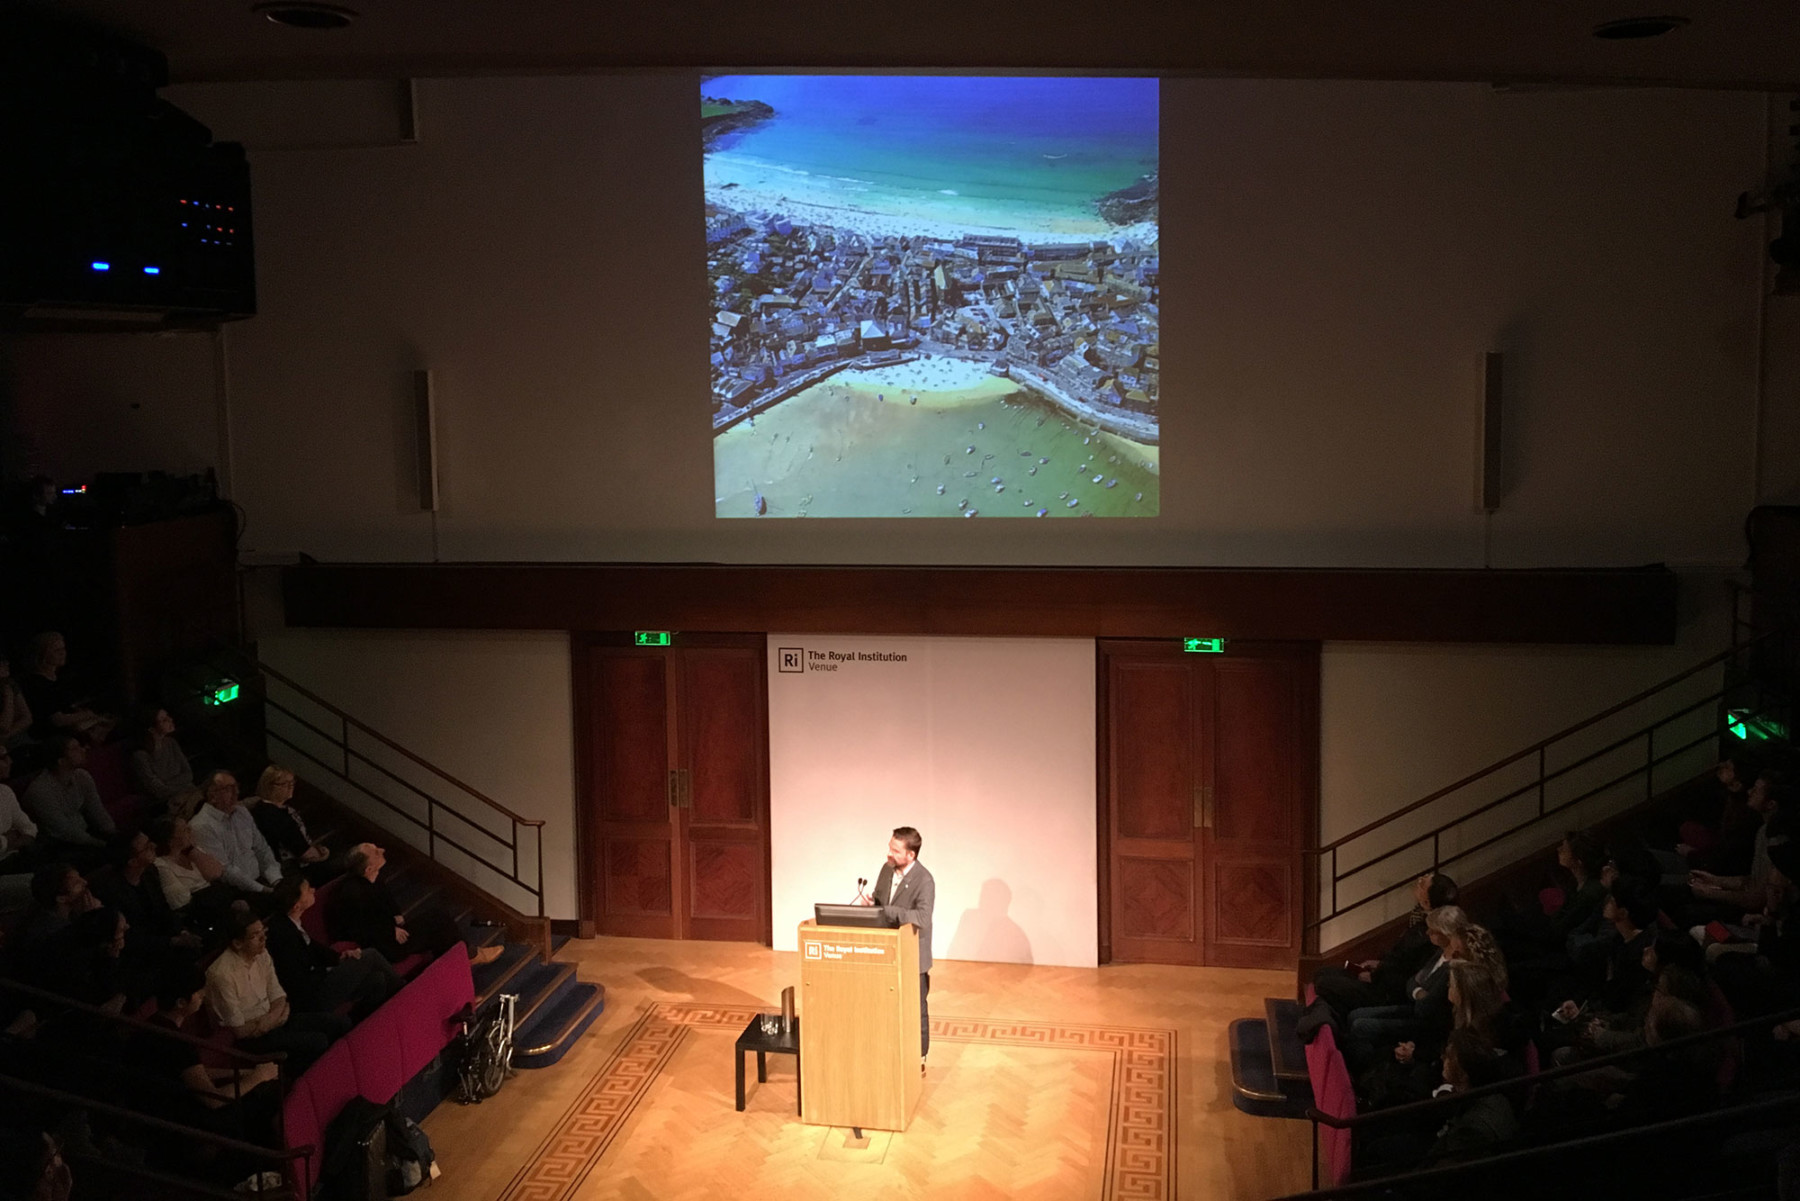 jamie-fobert-architecture-foundation-lecture-tate-st-ives-royal-institution-speaking-Jamie